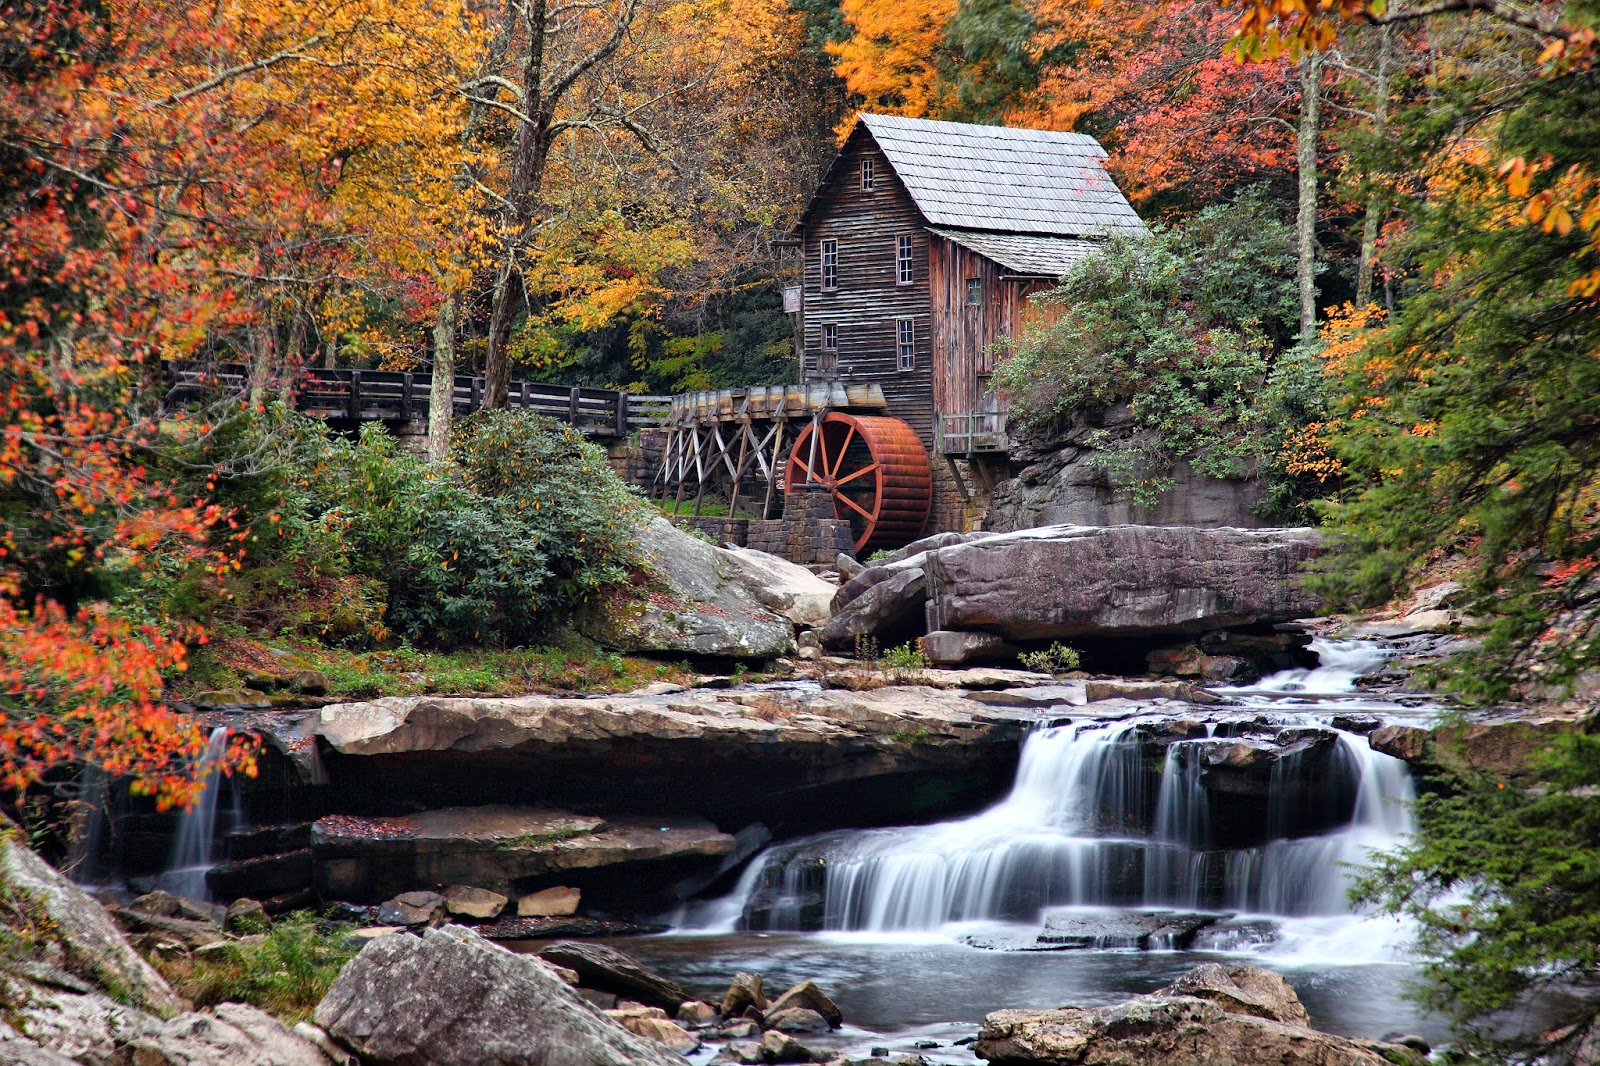 http://commons.wikimedia.org/wiki/File:Autumn-grist-mill-west-virginia-waterfalls1_-_West_Virginia_-_ForestWander.jpg